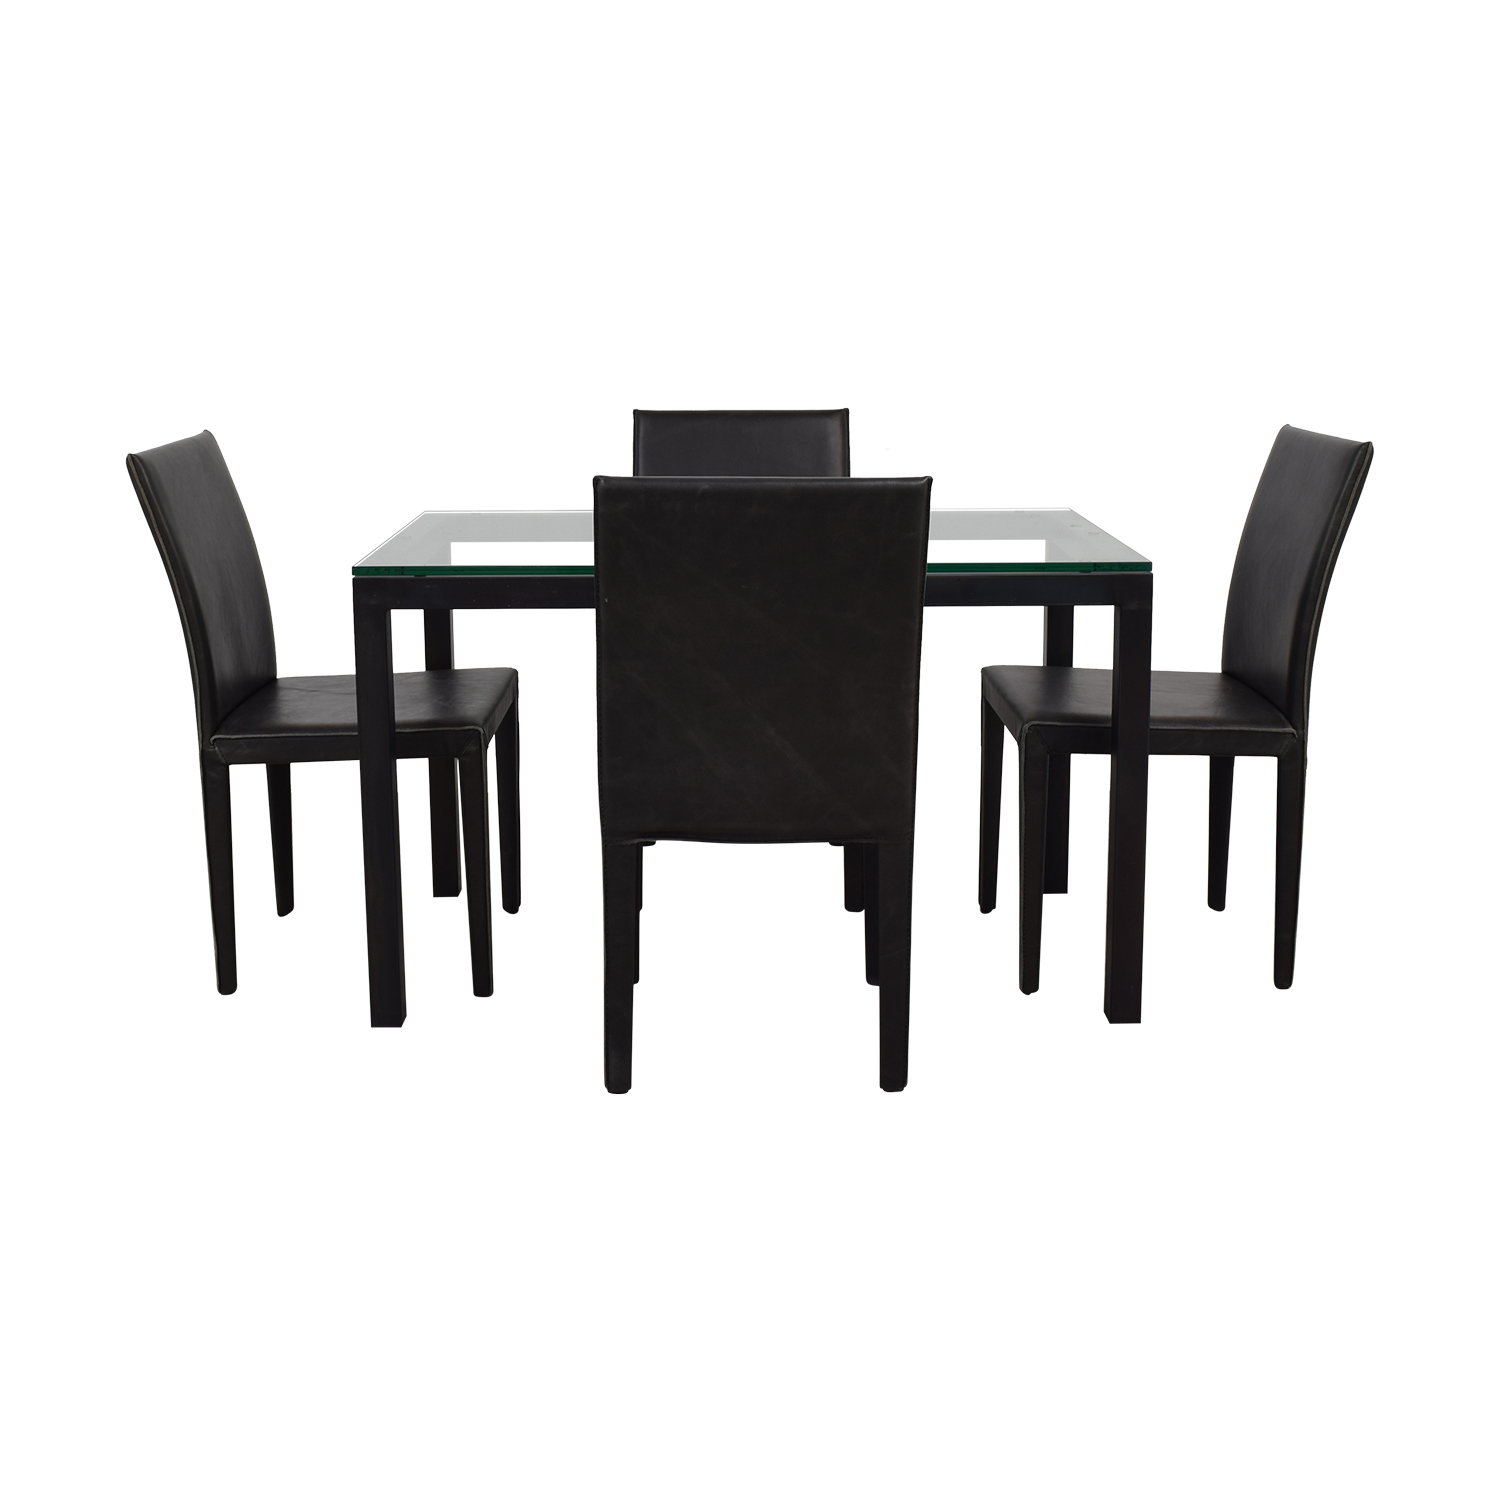 buy Crate & Barrel Maria Yee Glass and Black Dining Set Crate & Barrel